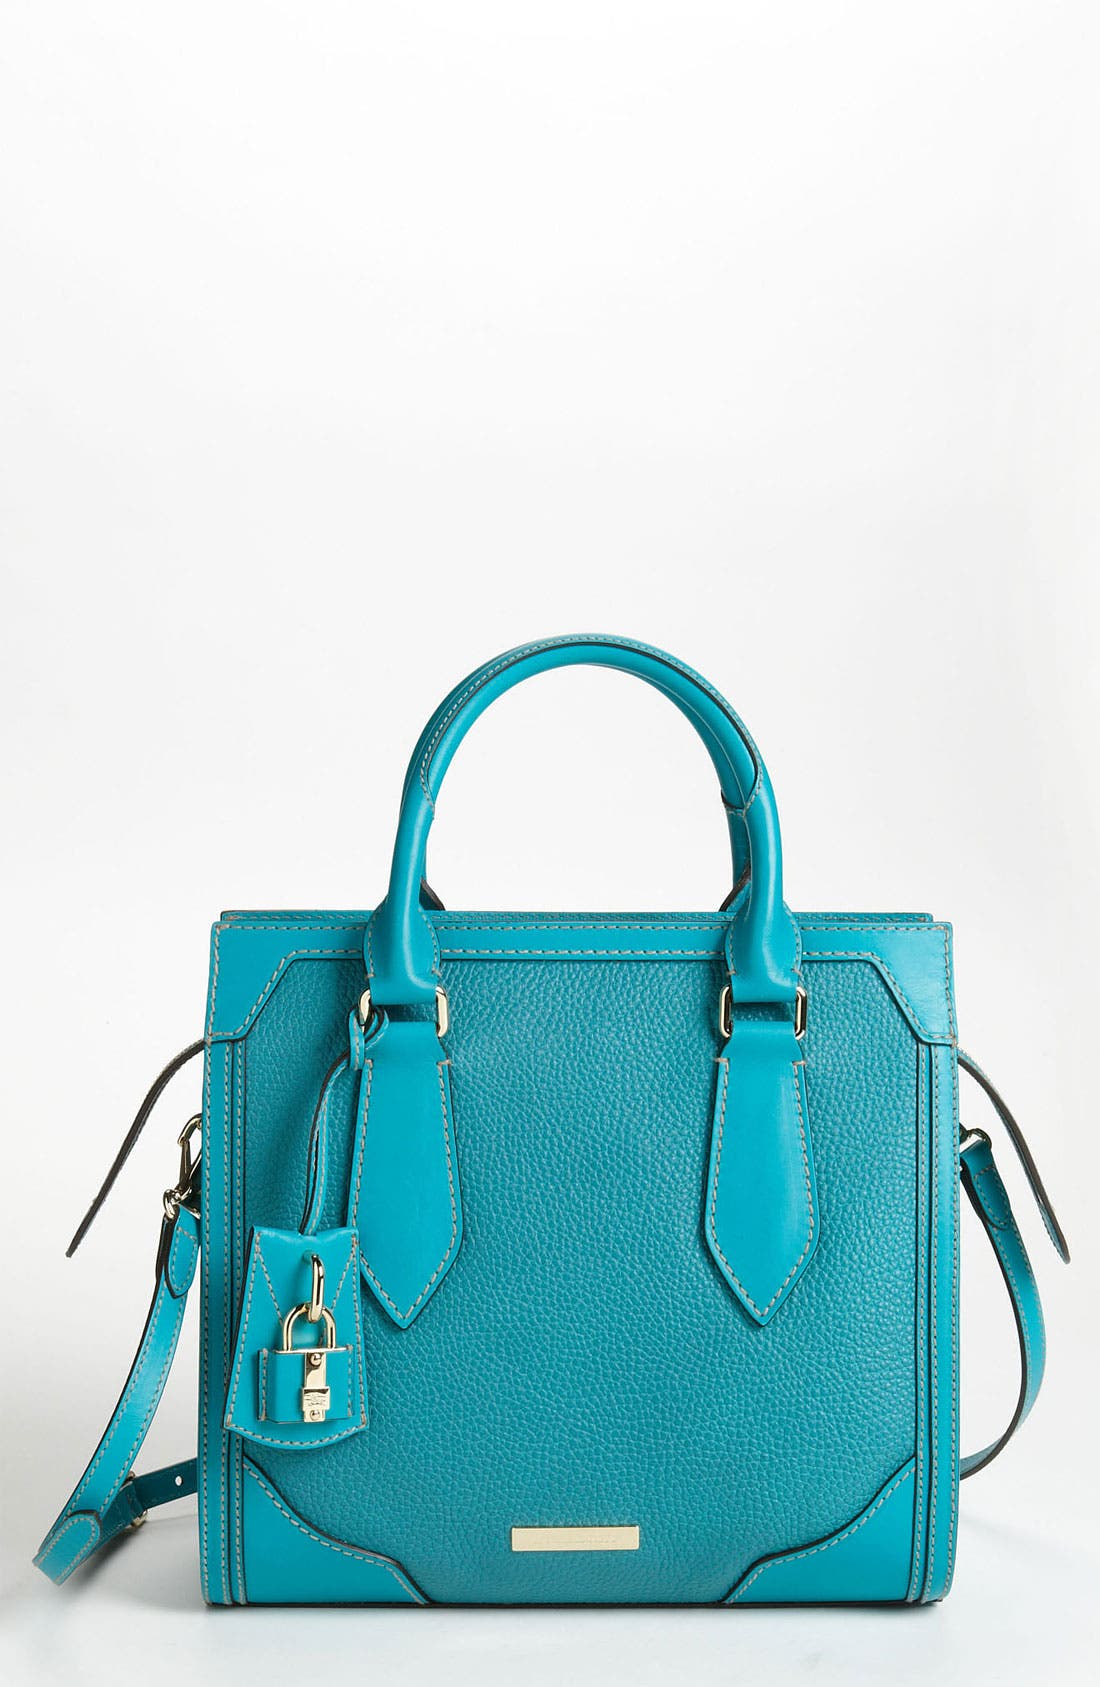 Alternate Image 1 Selected - Burberry 'Classic Grainy' Leather Tote